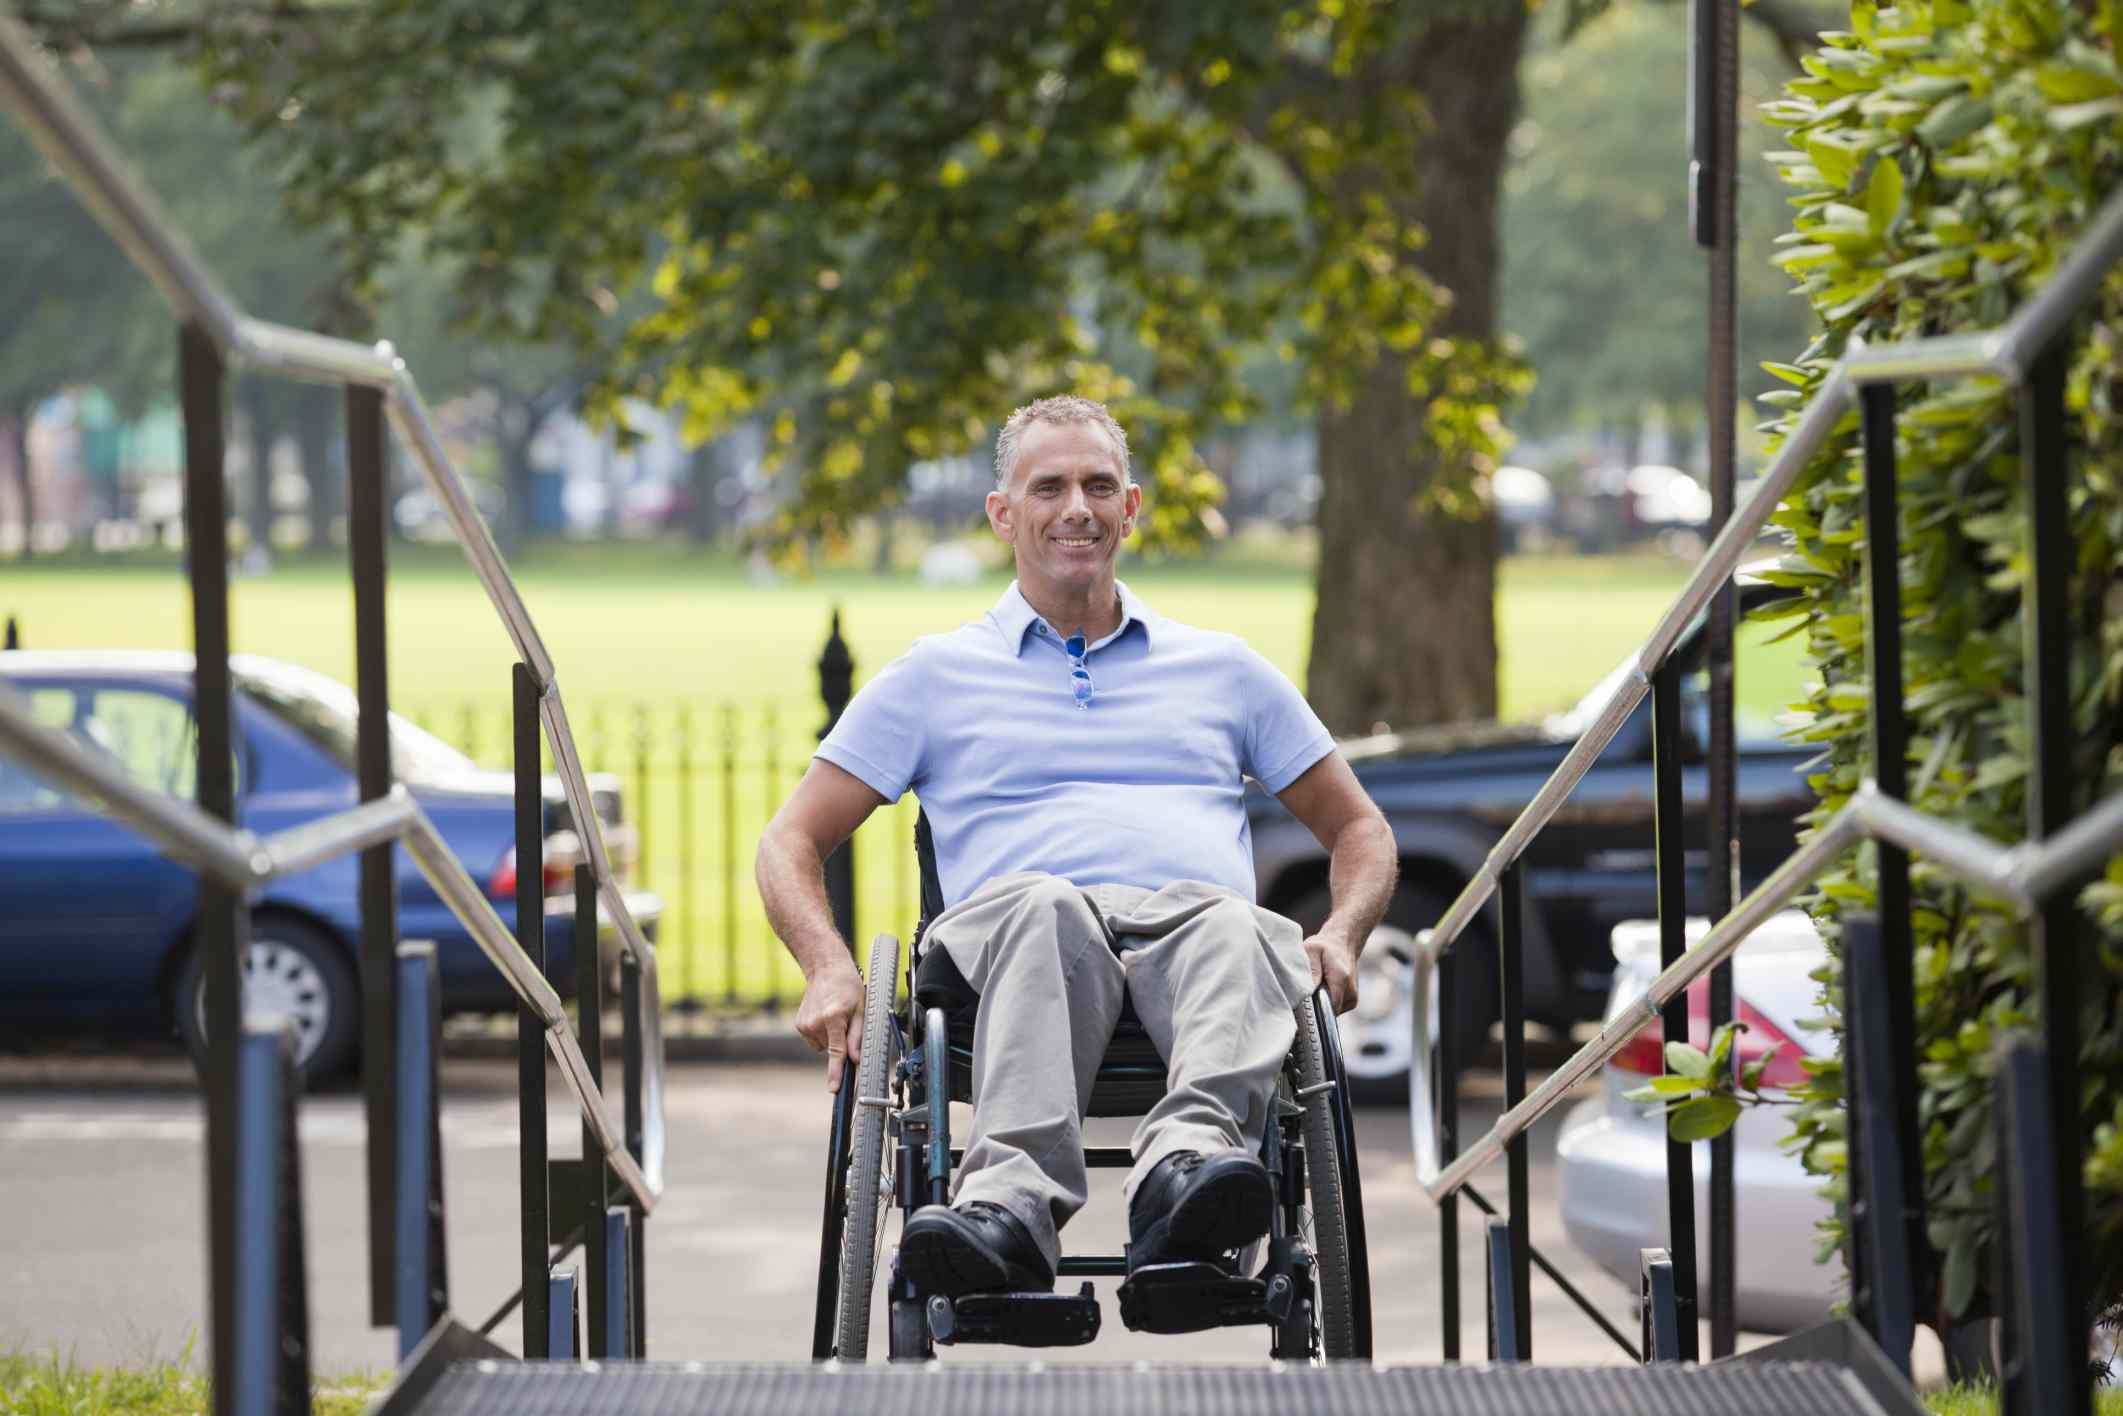 Man with spinal cord injury in wheelchair moving up an outdoor wheelchair ramp